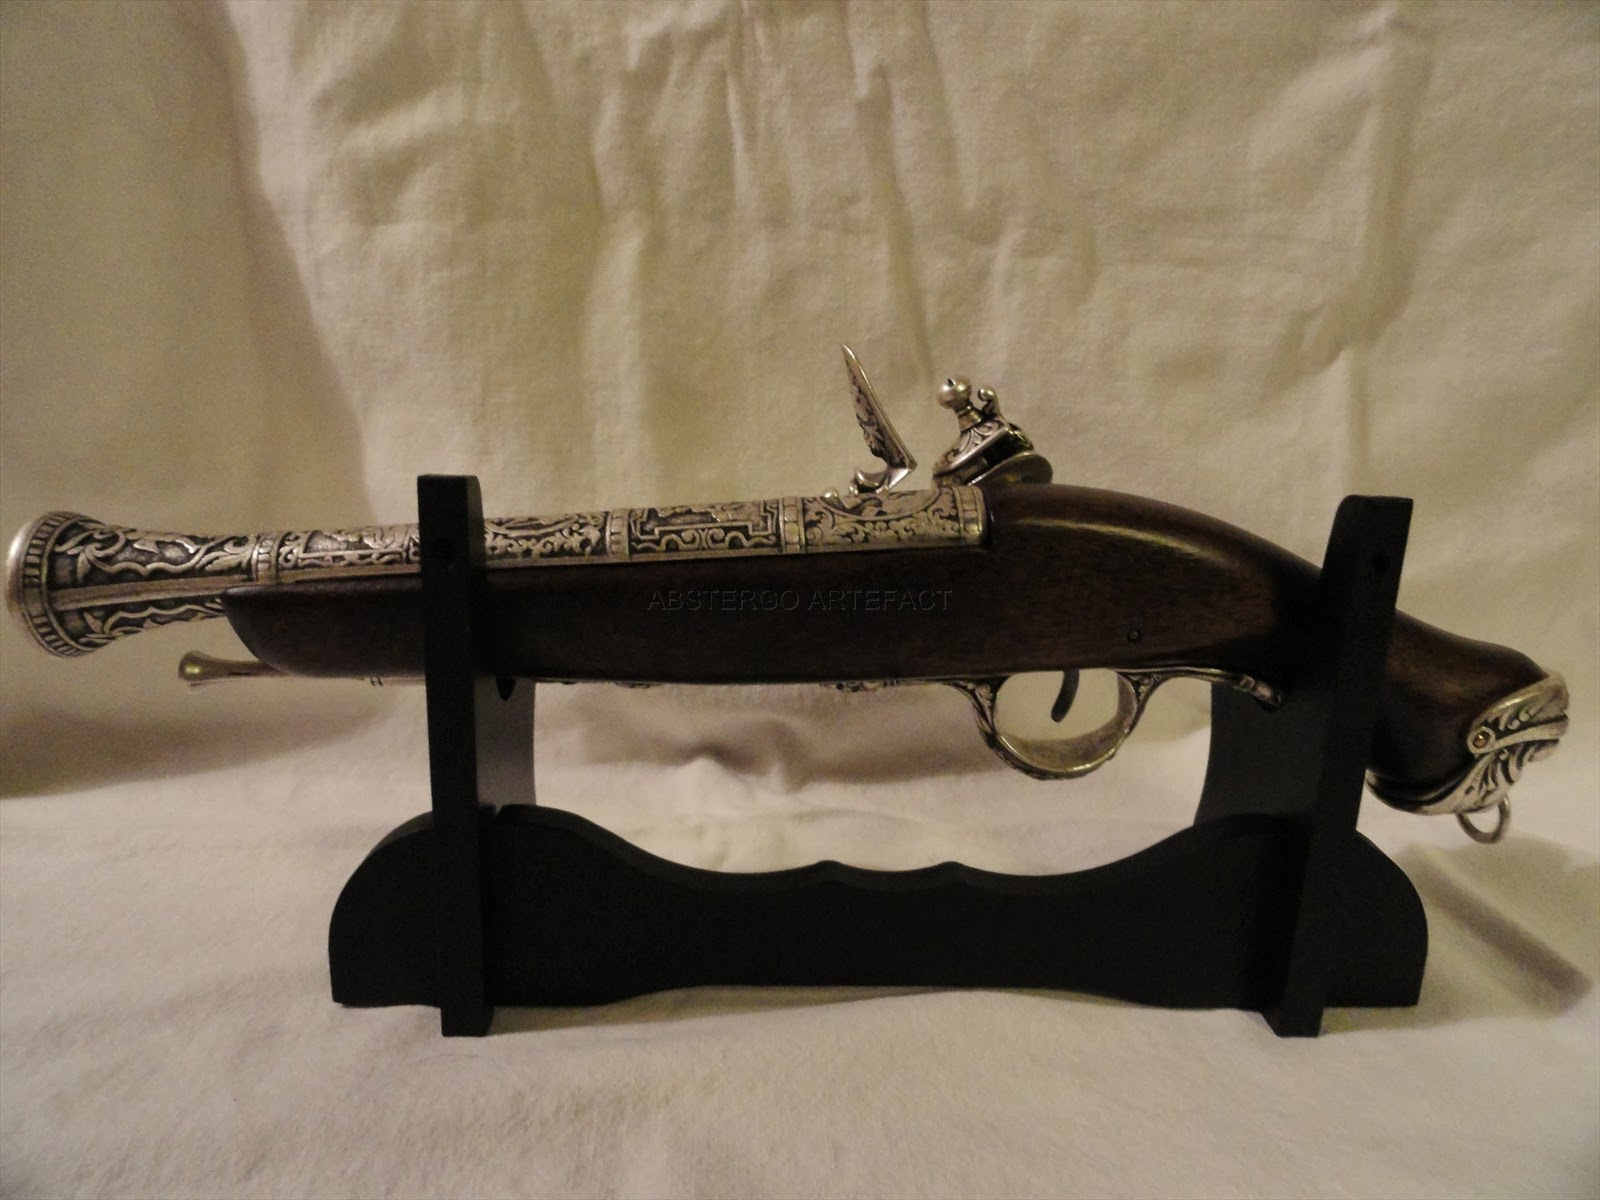 Artefact Decoration Abstergo Artefact Ac4 Pistol Gun With Decorated Barrel